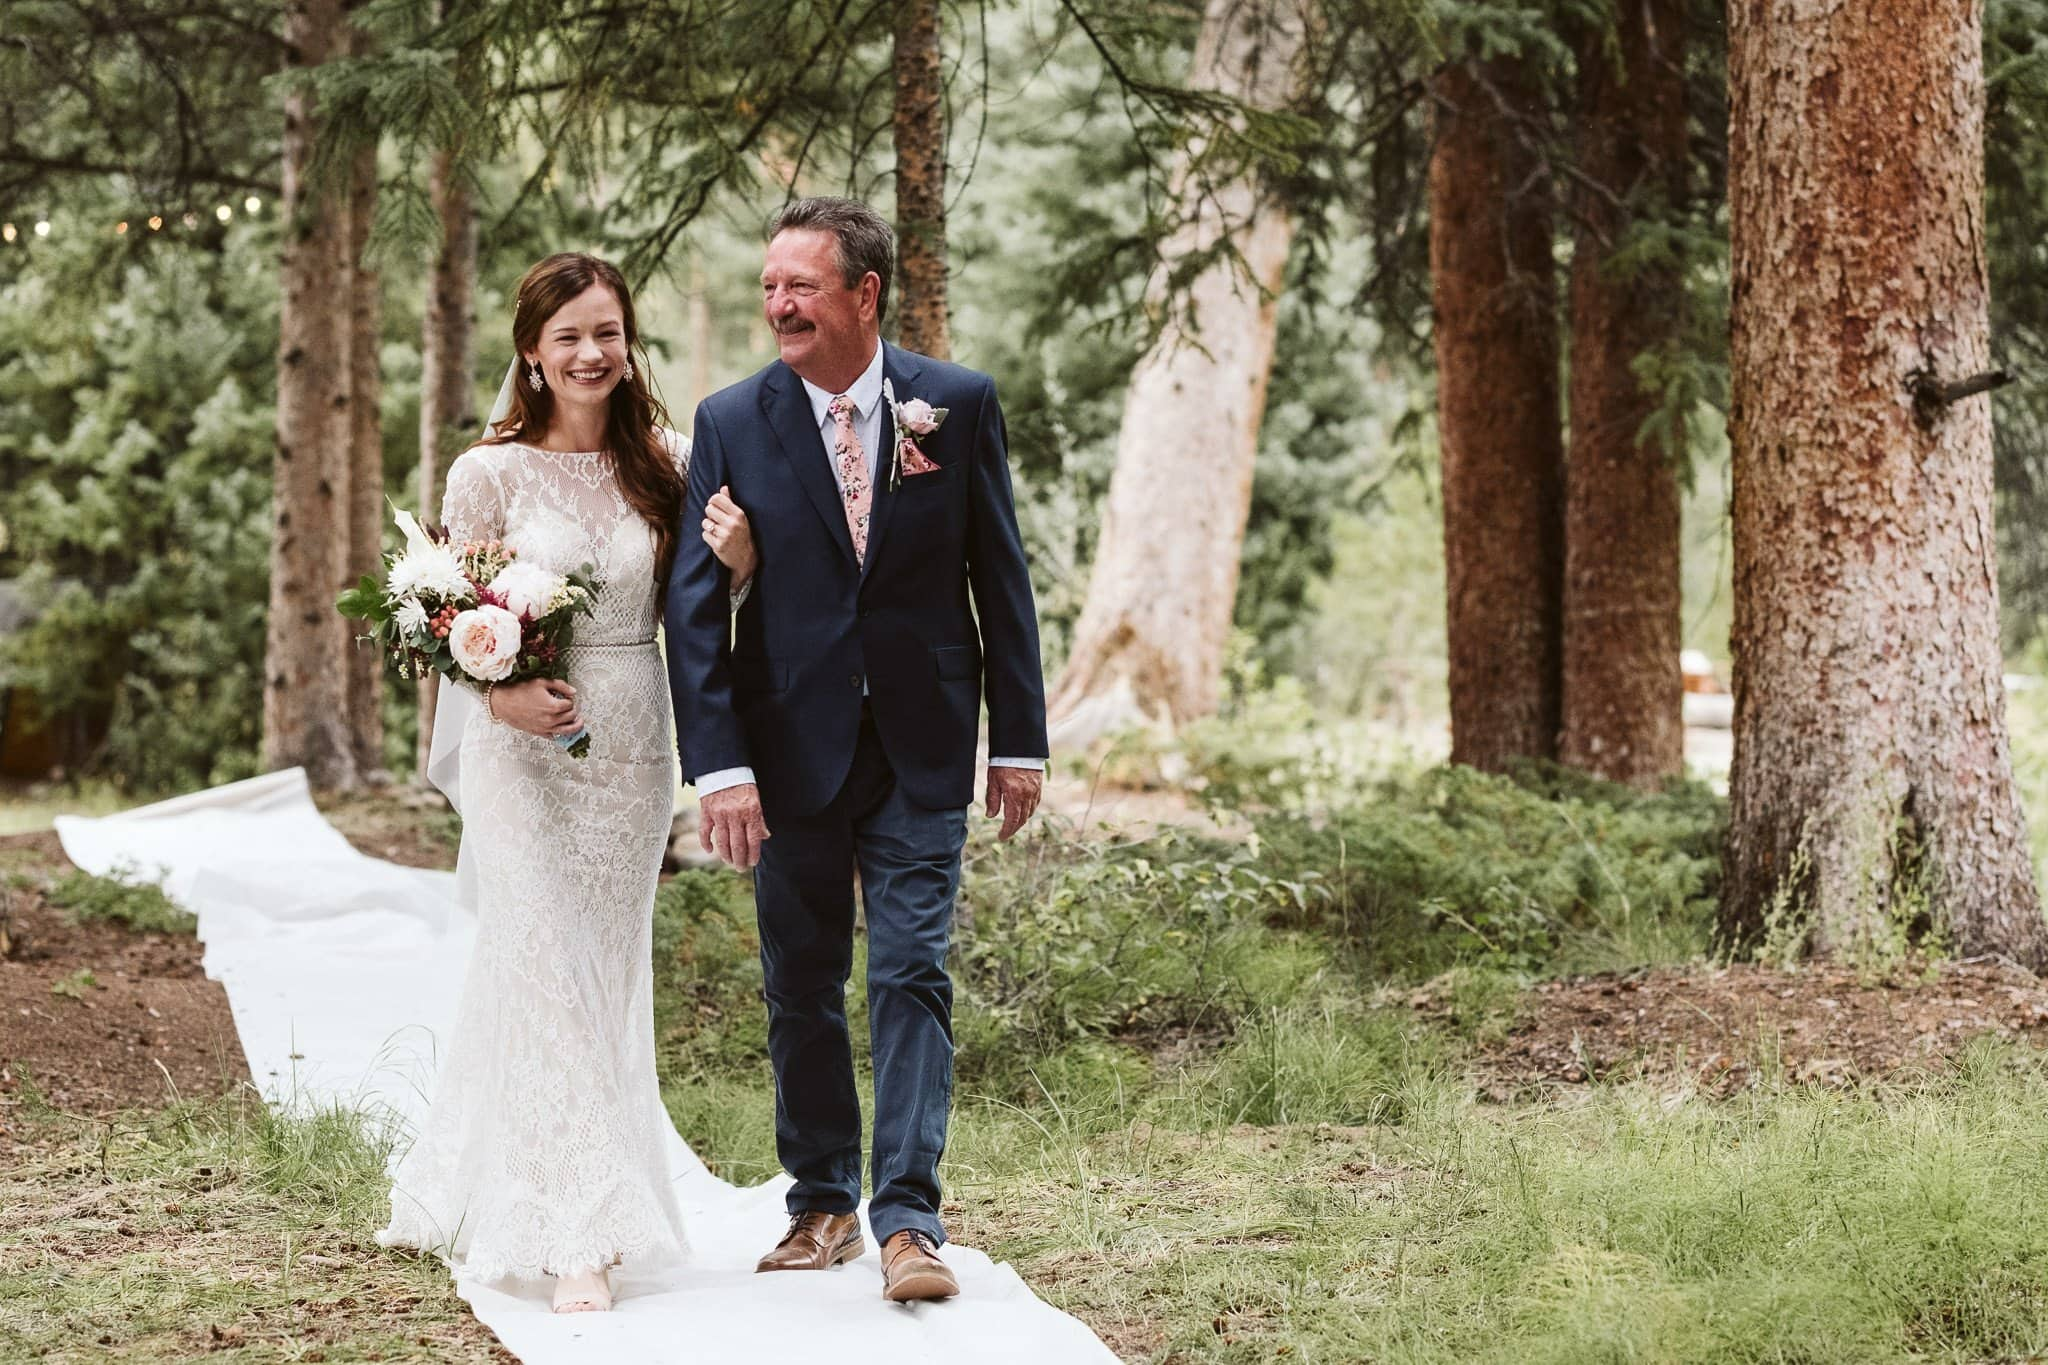 Bride and her father walking down the trail for a wedding ceremony in the woods, Rivertree Lodge in Breckenridge wedding